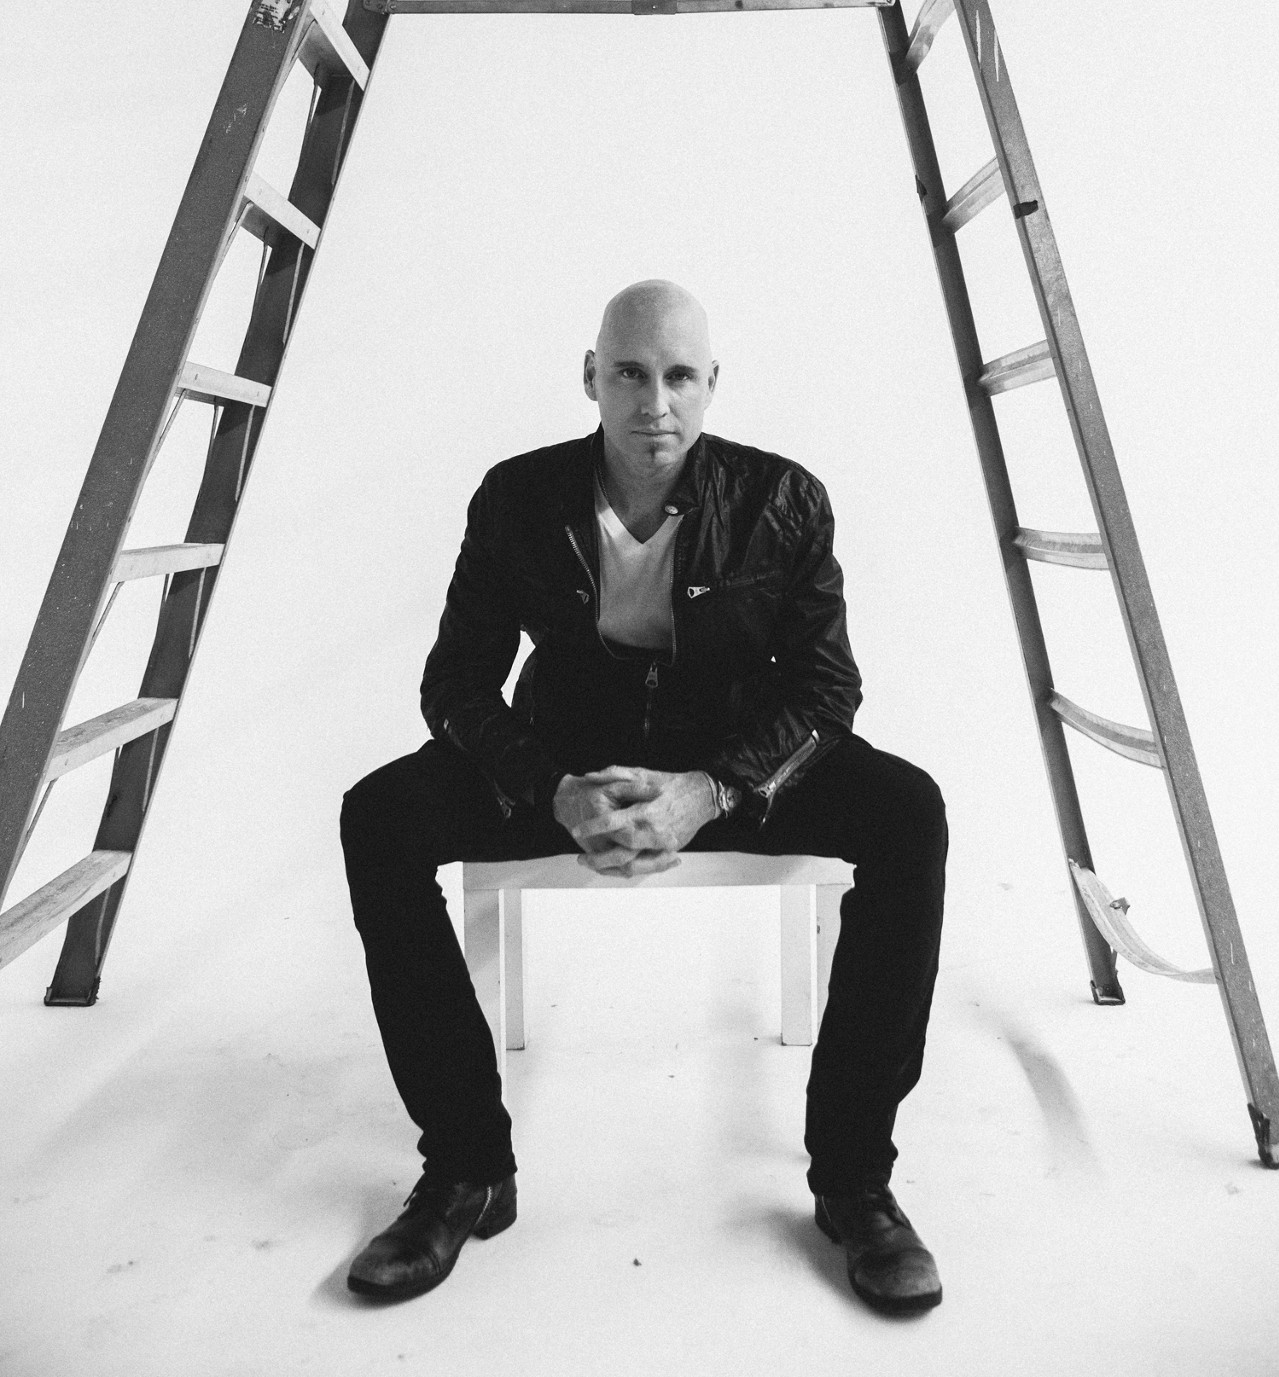 On The Line with Matt Scannell of Vertical Horizon